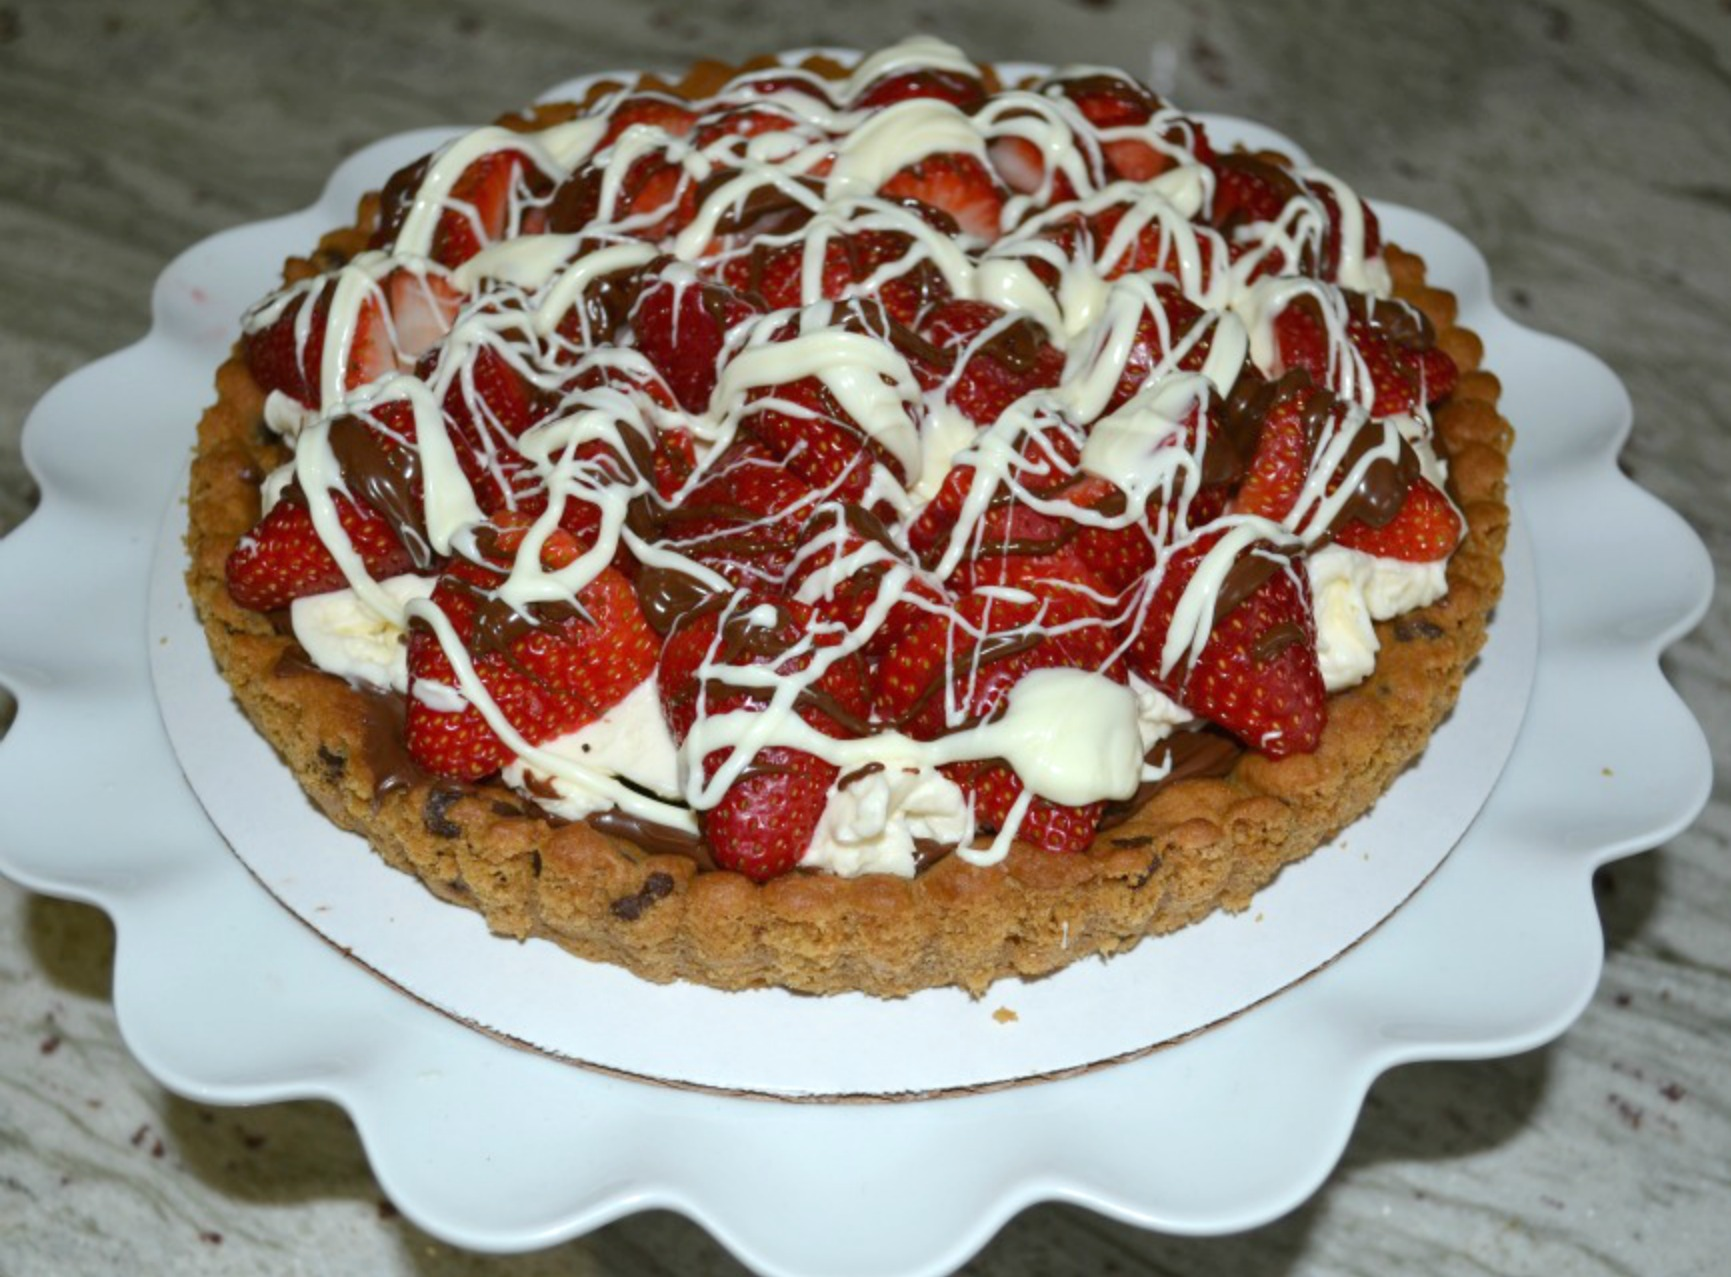 strawberr-mascarpone-hazelnut-choc-tart-drizzle-finished